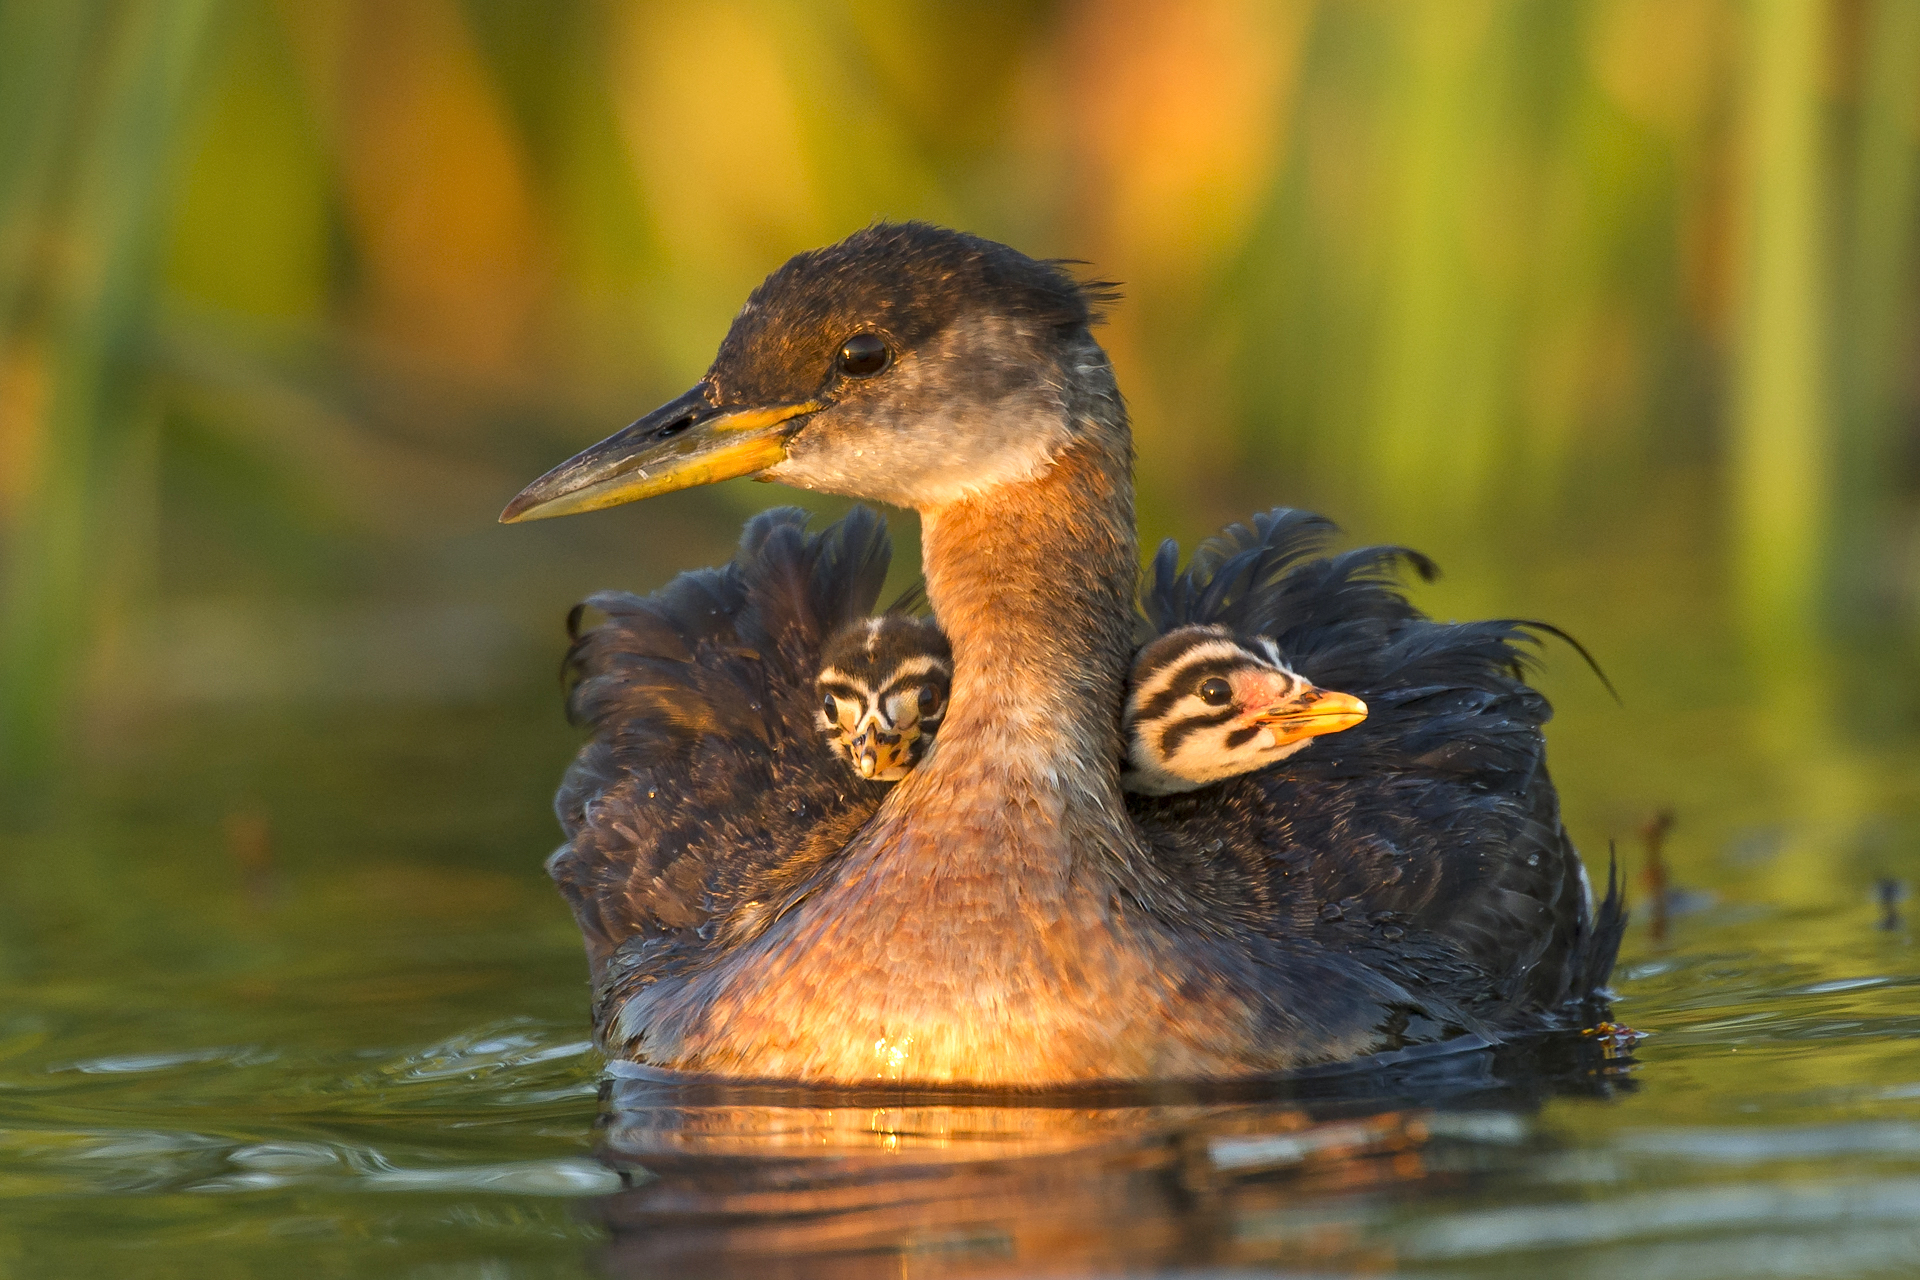 Precious cargo: red-necked grebes